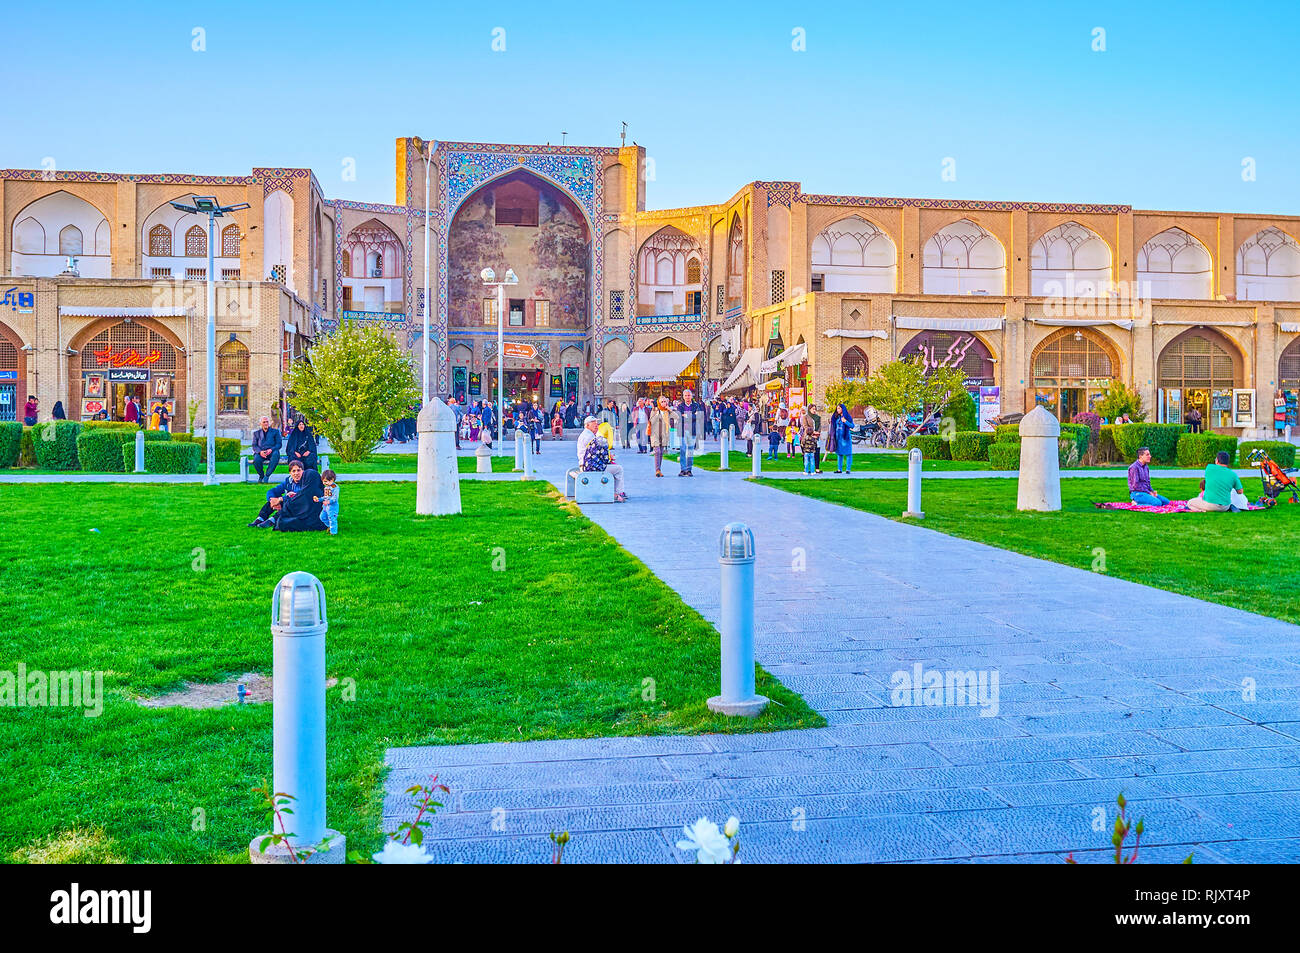 ISFAHAN, IRAN - OCTOBER 19, 2017: The old Qeysarie Gates with partly preserved decorations located in Naqsh-e Jahan Square, on October 19 in Isfahan Stock Photo